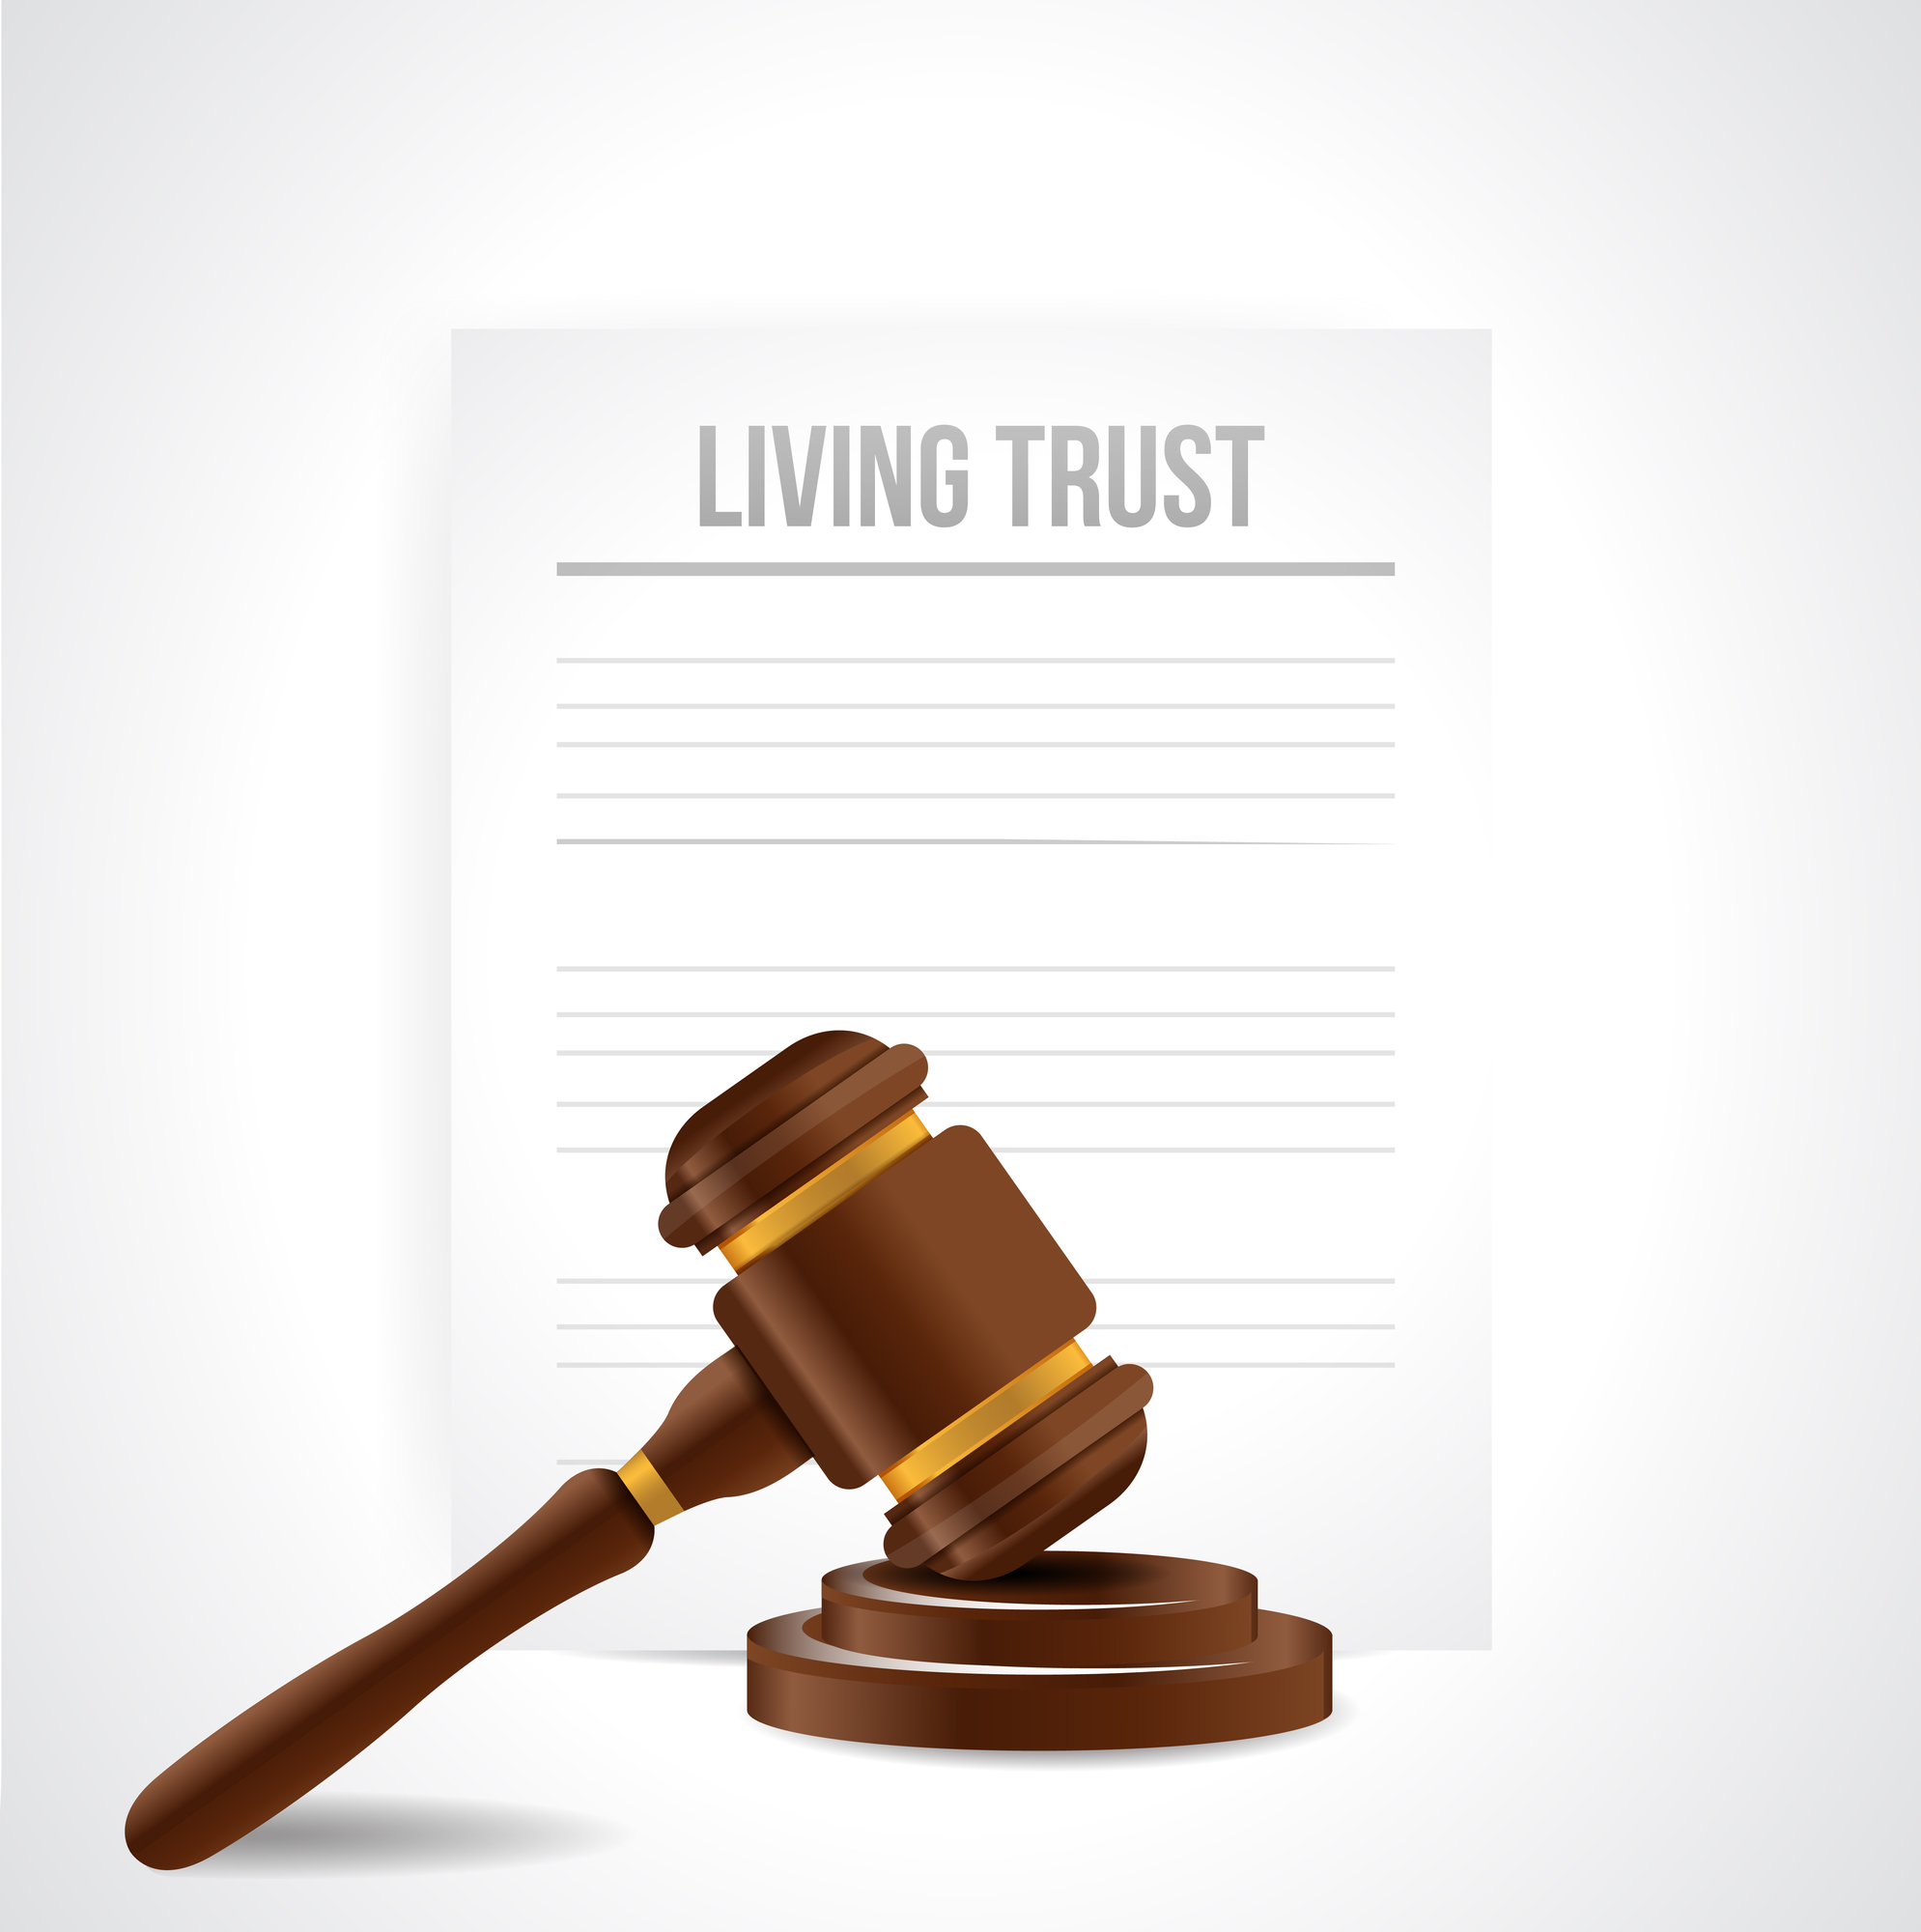 Why Have A Living Trust?